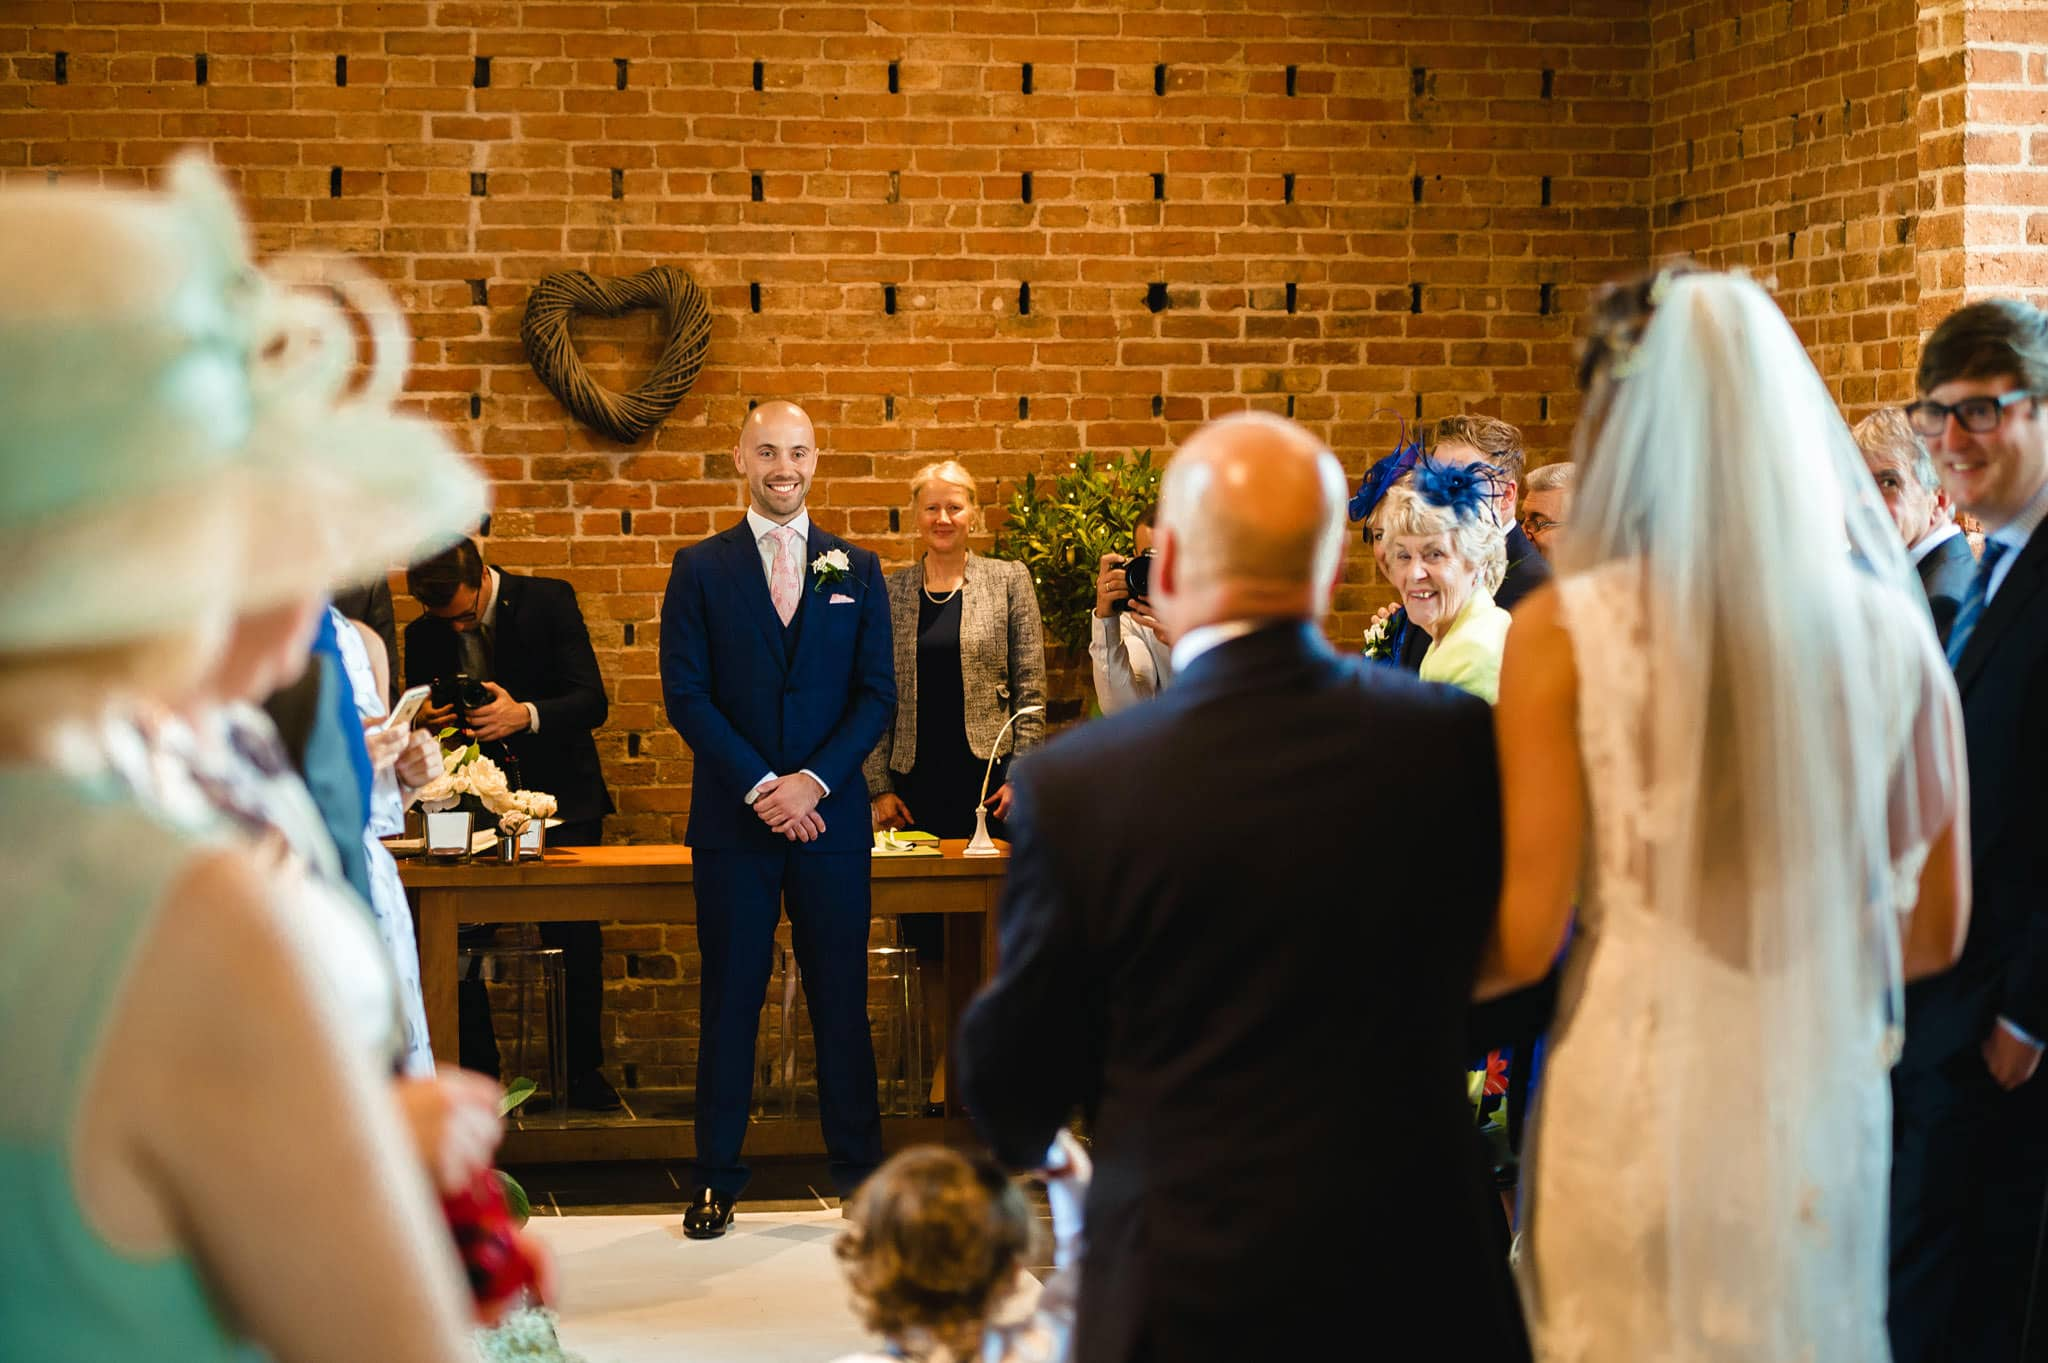 wedding at redhouse barn 71 - Wedding at Redhouse Barn in Stoke Prior, Worcestershire